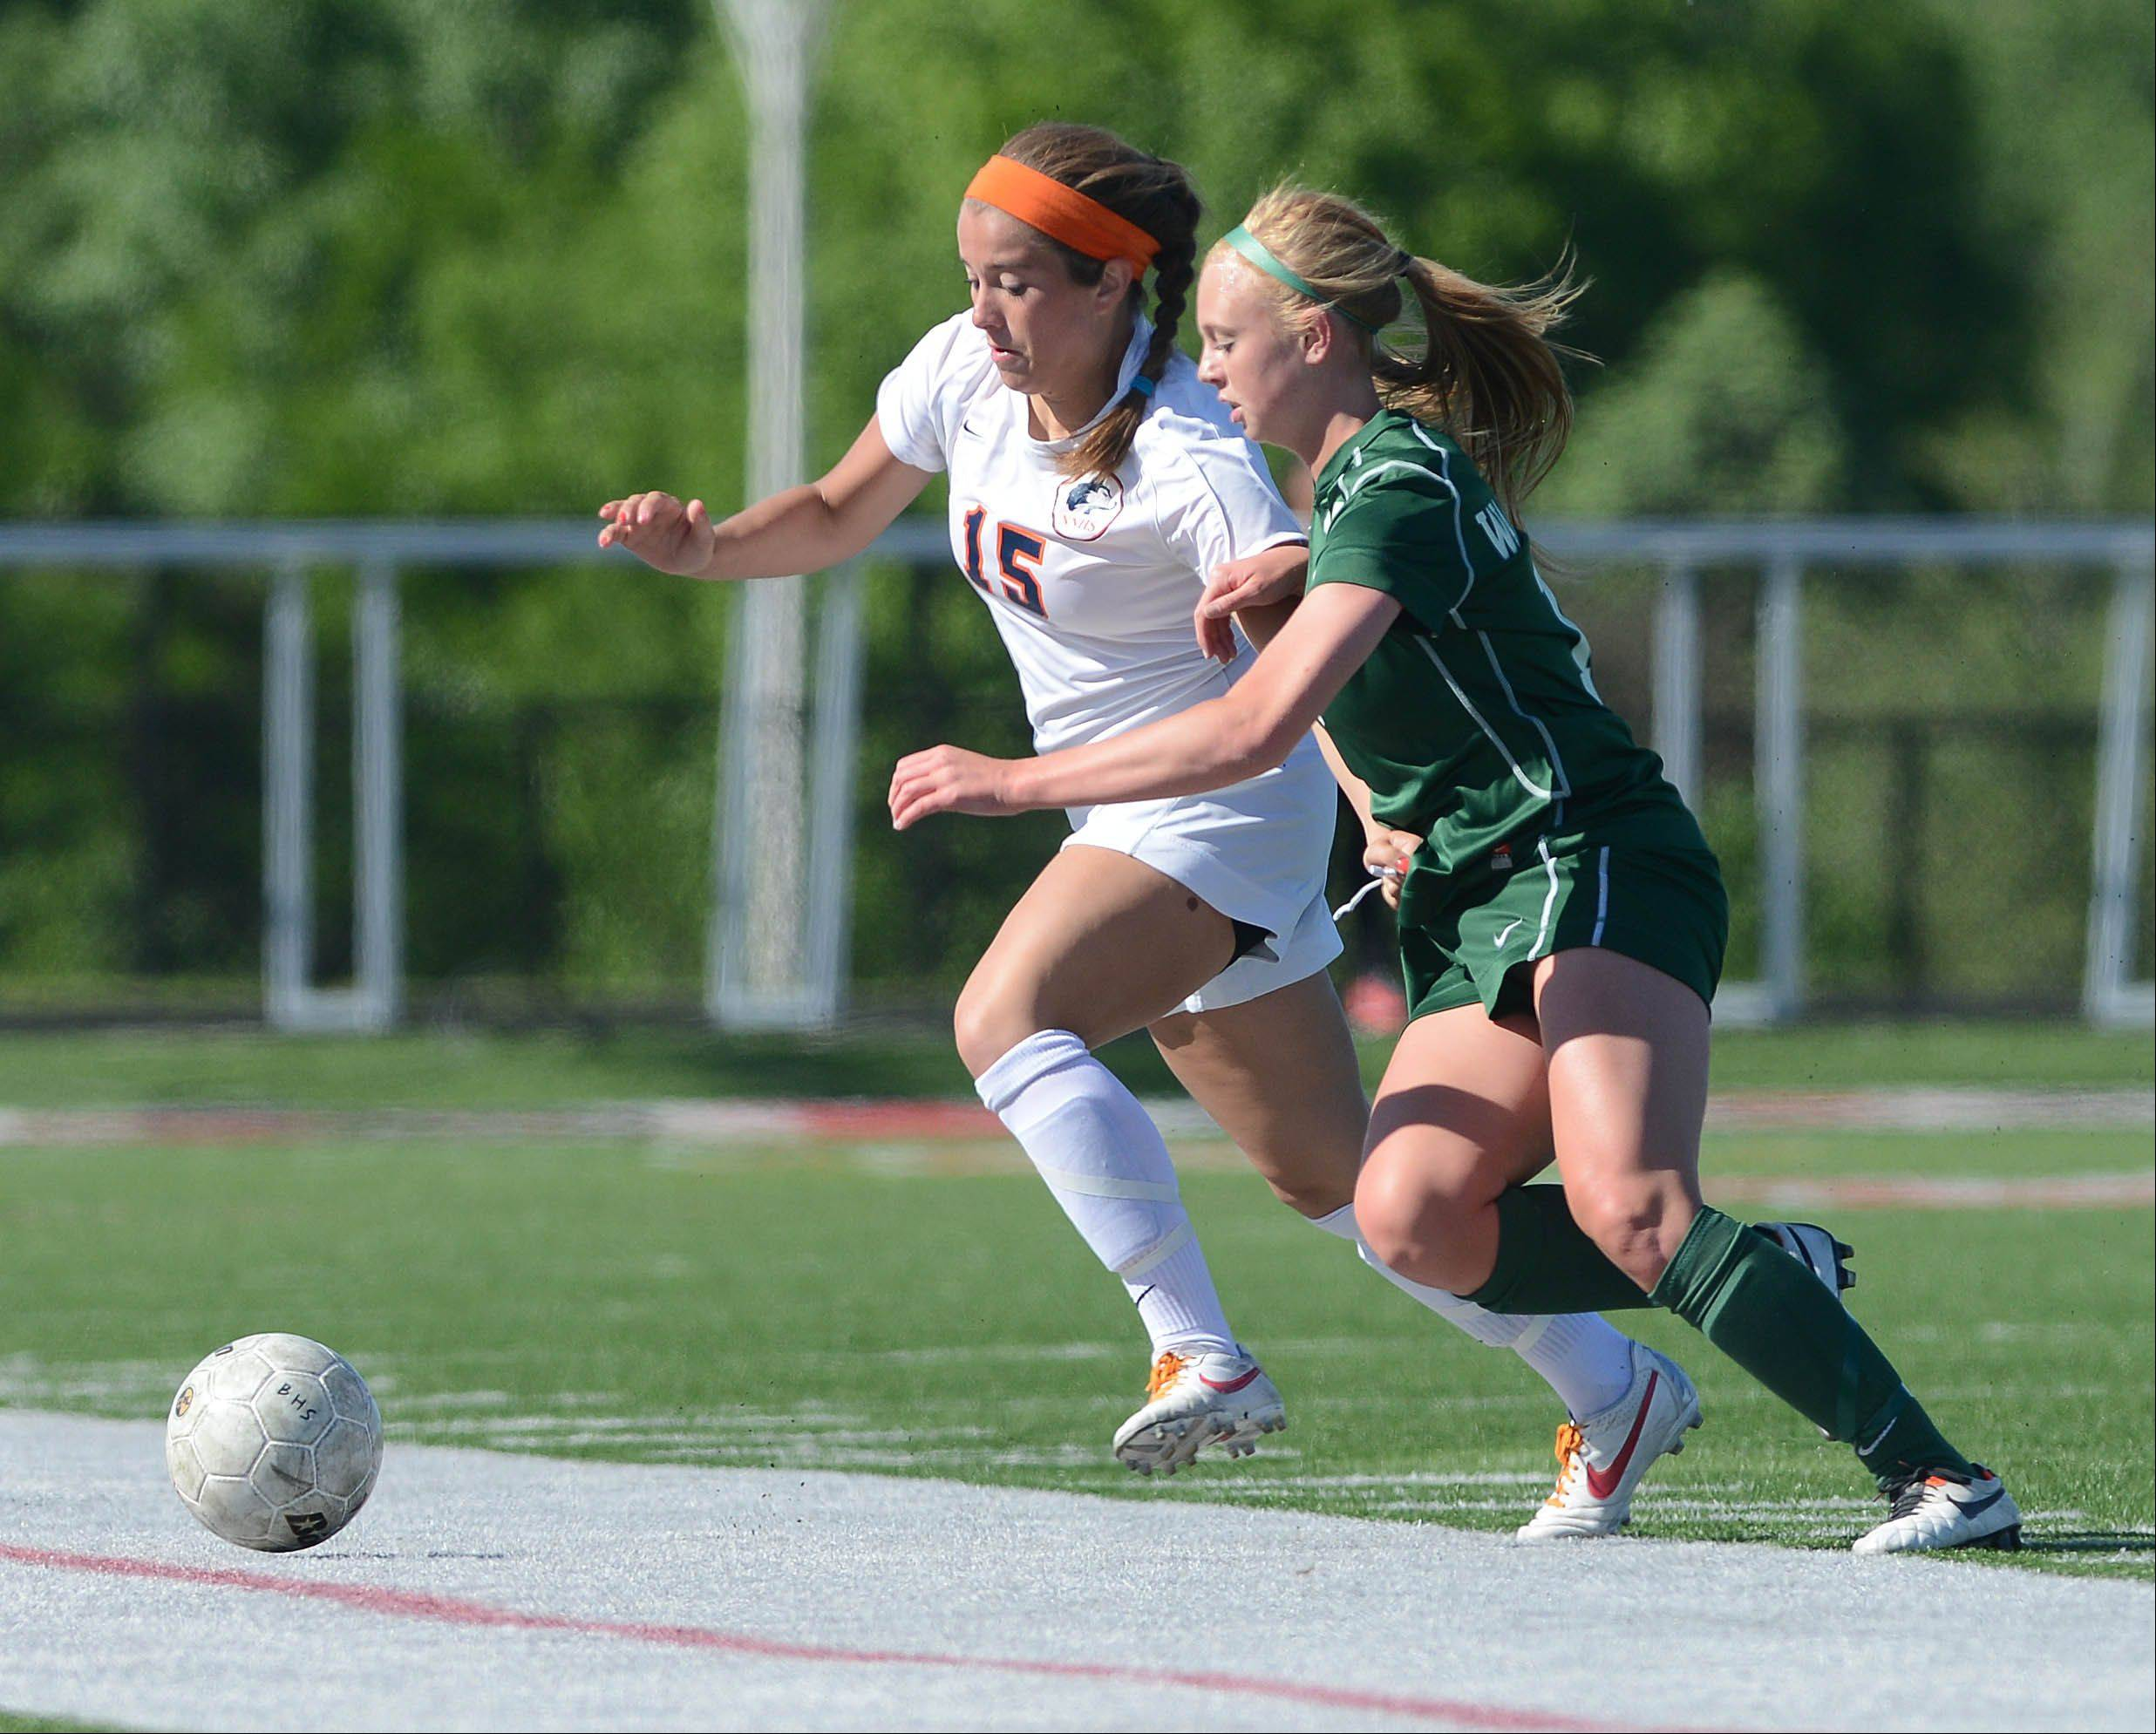 Cora Climo of Naperville North,left, and Sarah Laws of Waubonsie Valley move the ball during the Class 3A Bolingbrook girls soccer sectional final Friday.